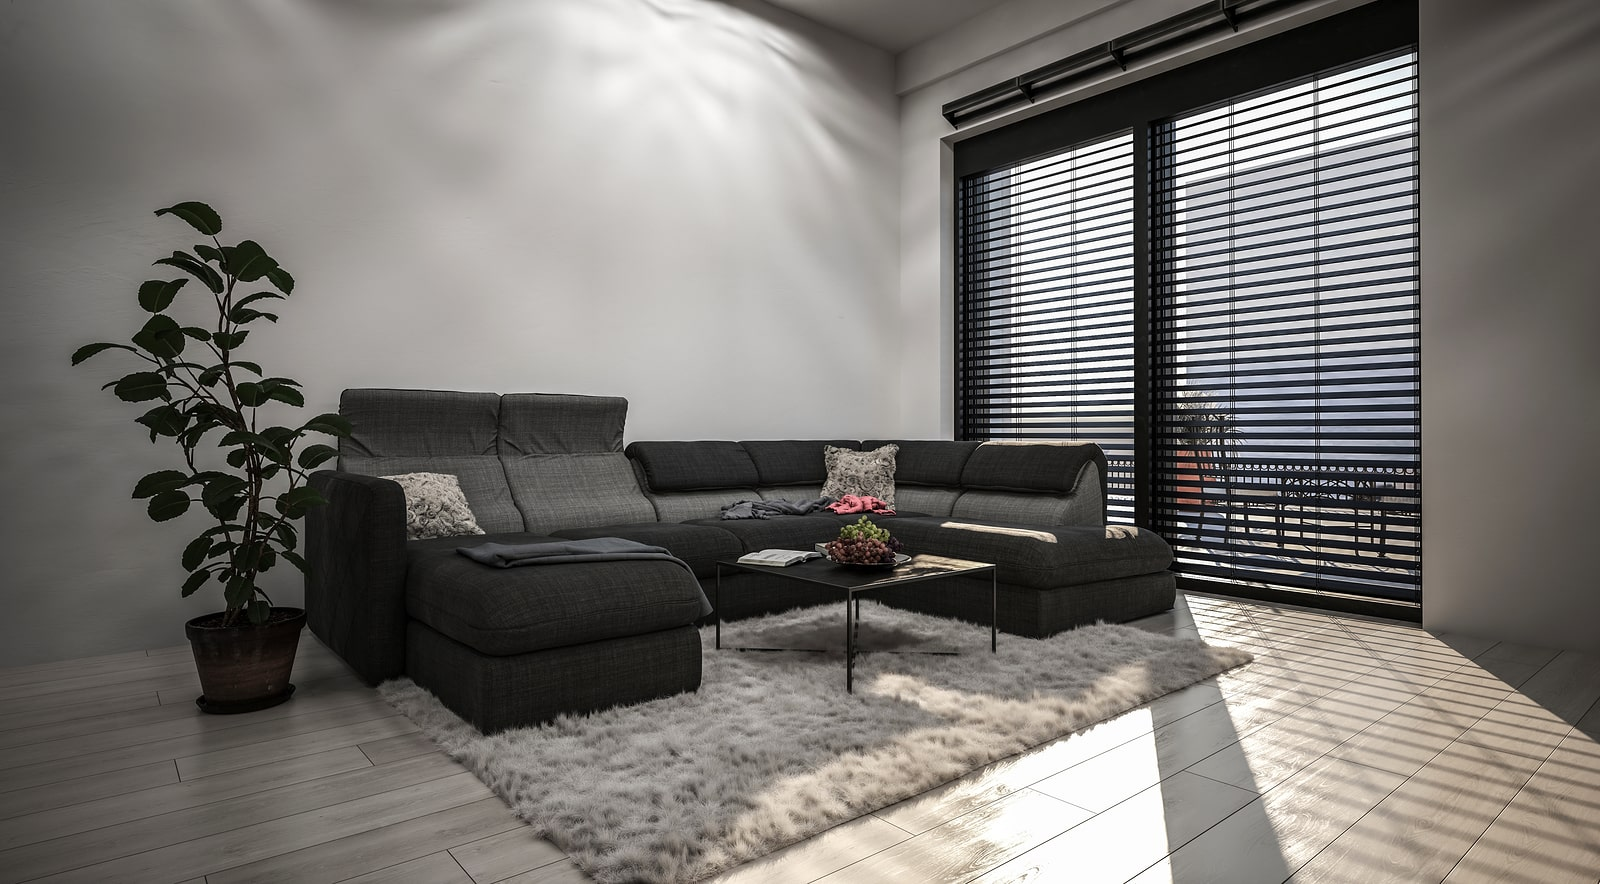 Spacious living room with high window with horizontal blinds,